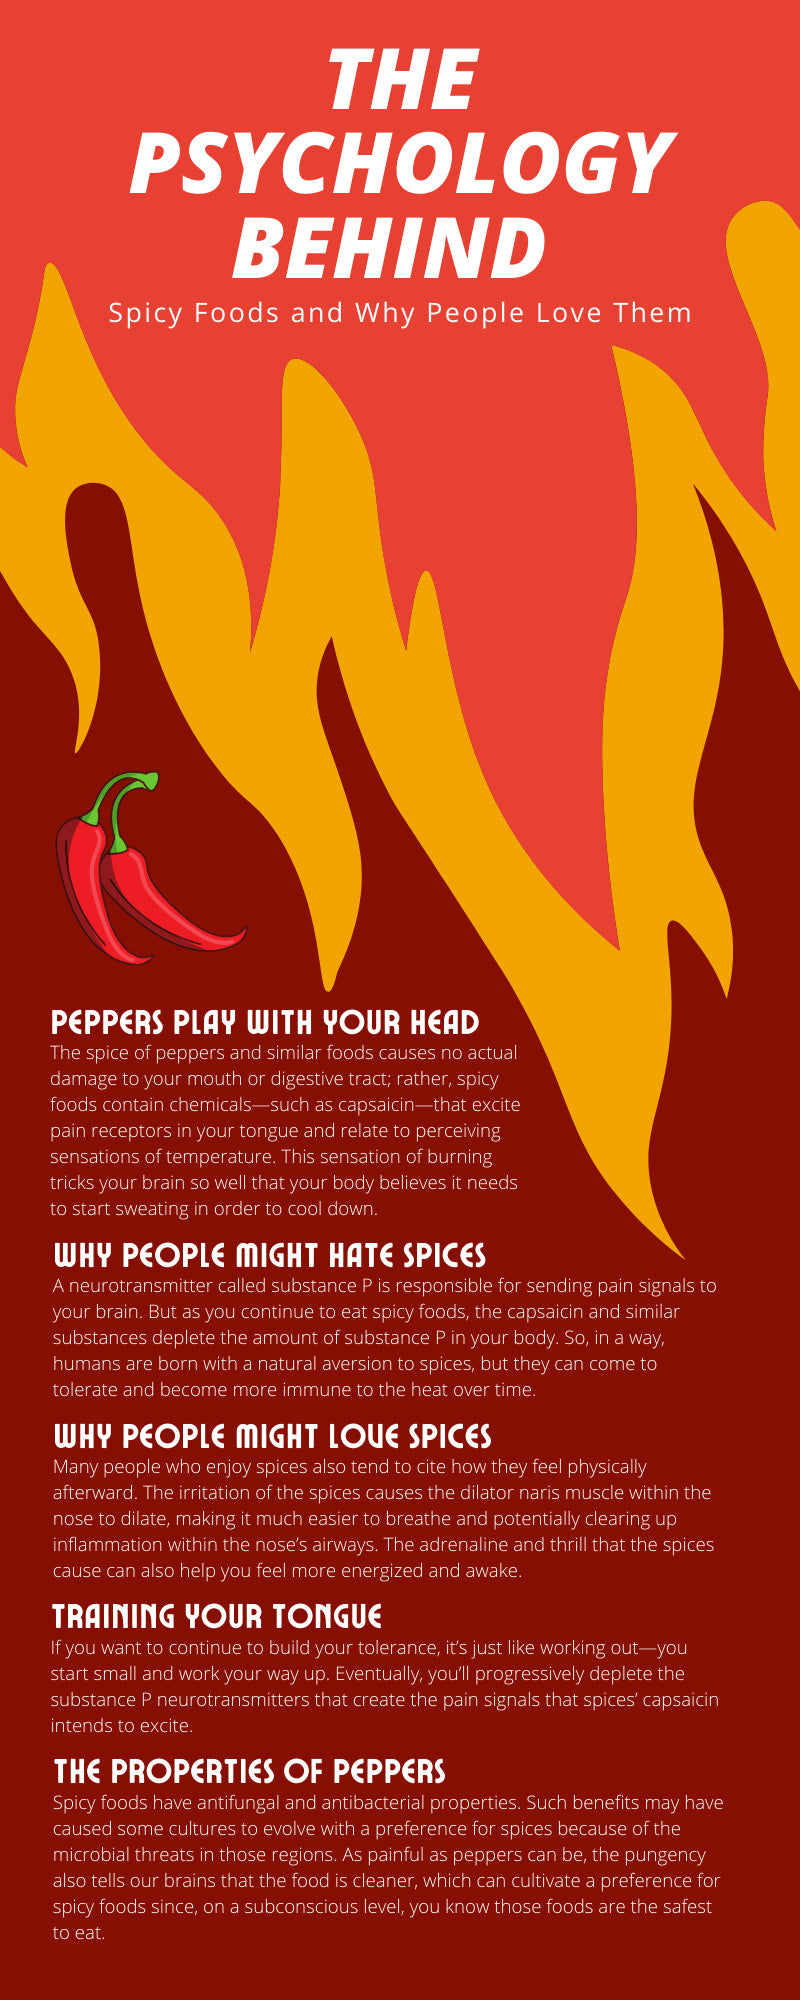 The Psychology Behind Spicy Foods and Why People Love Them